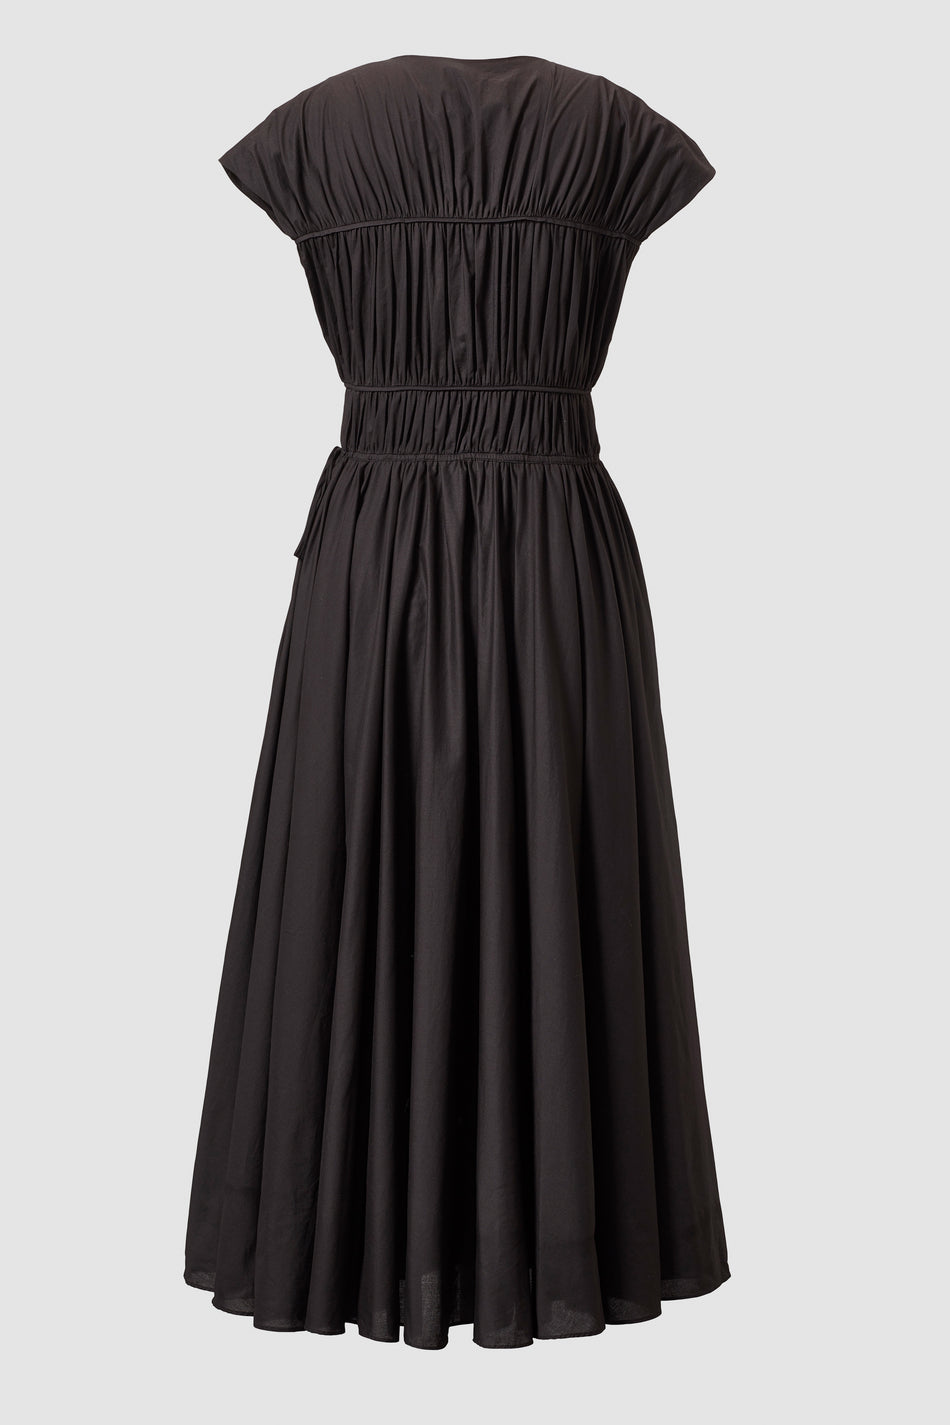 Tove Ceres Cotton Midi Dress Black